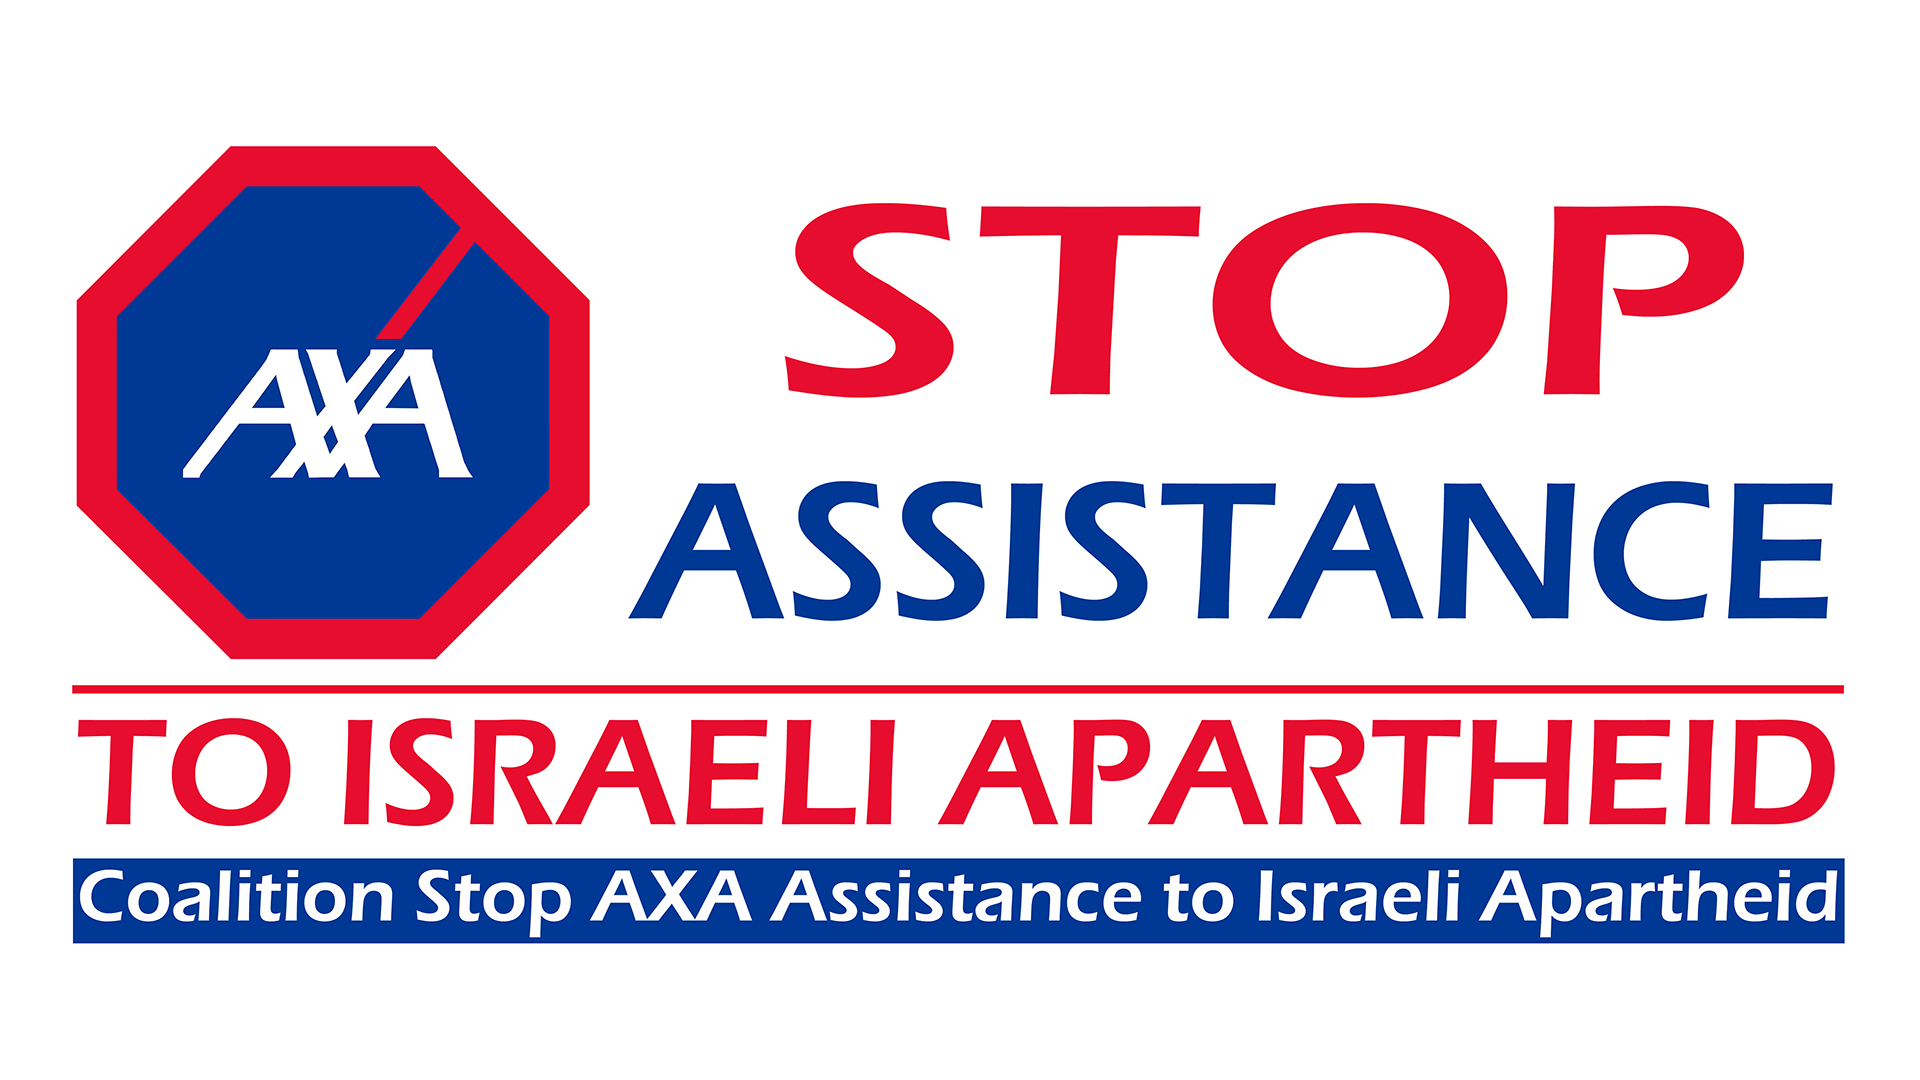 AXA Stop assistance to Israeli Apartheid